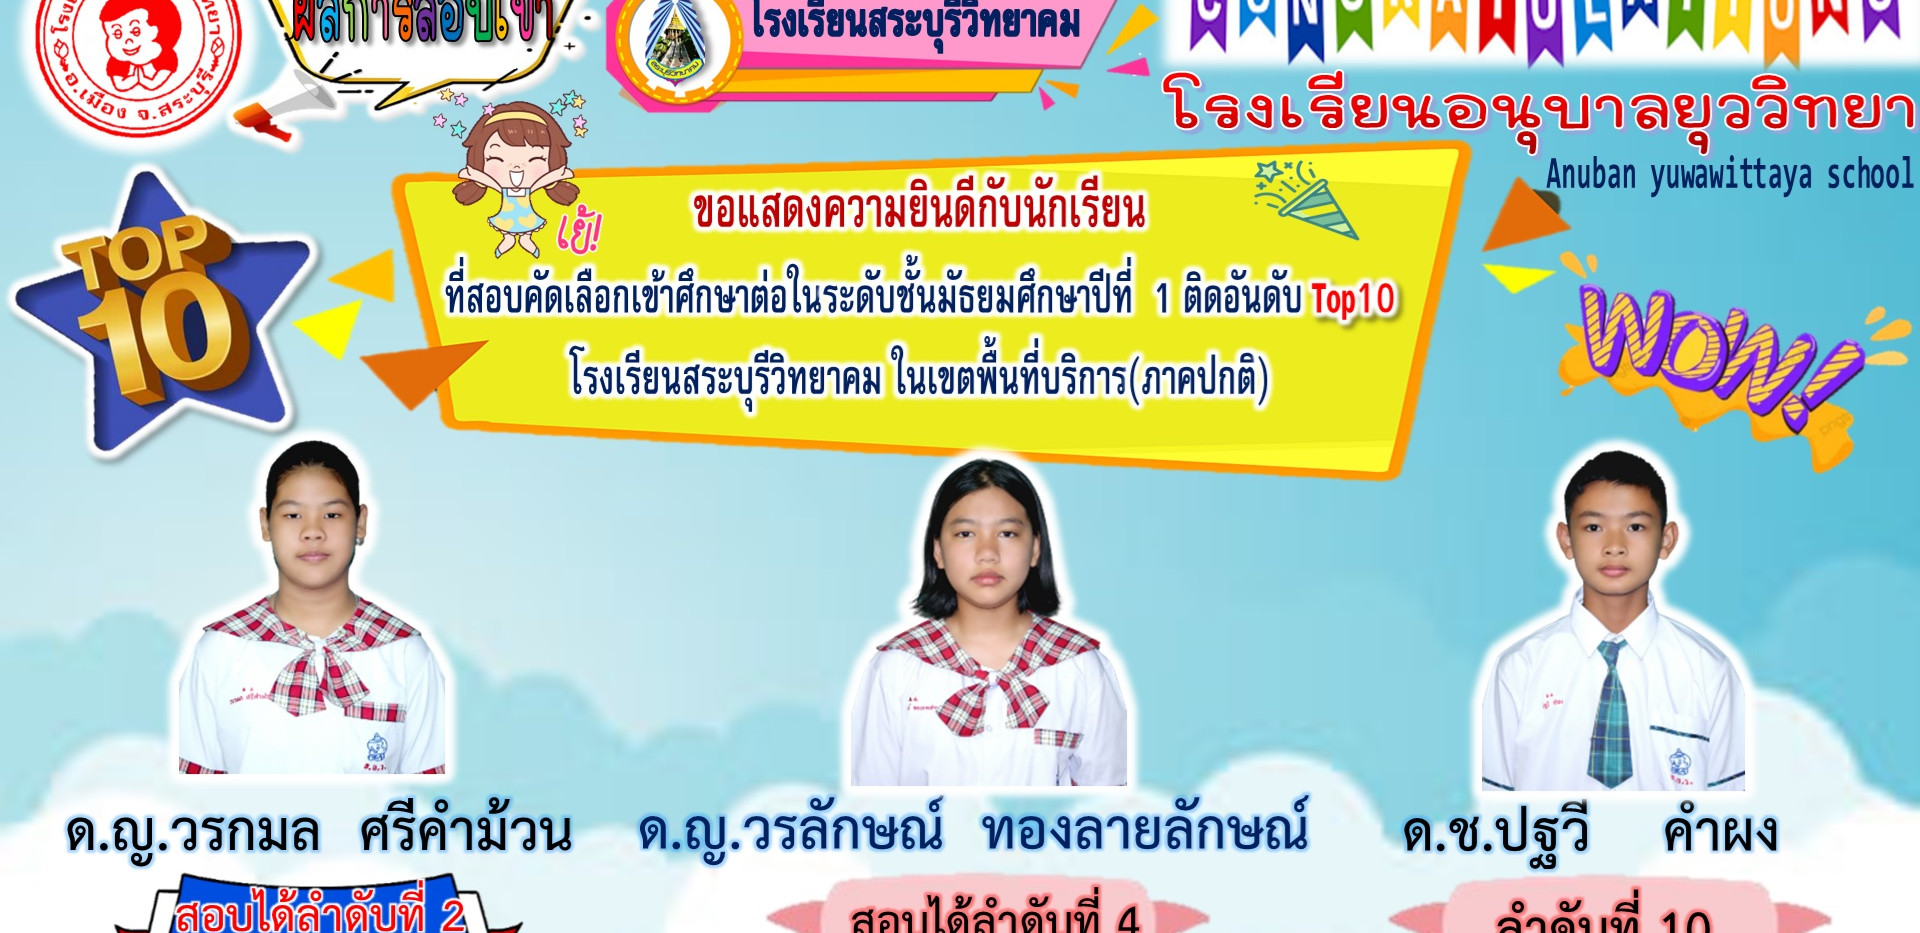 Cover_Admission_School_SBW_outbound.jpg